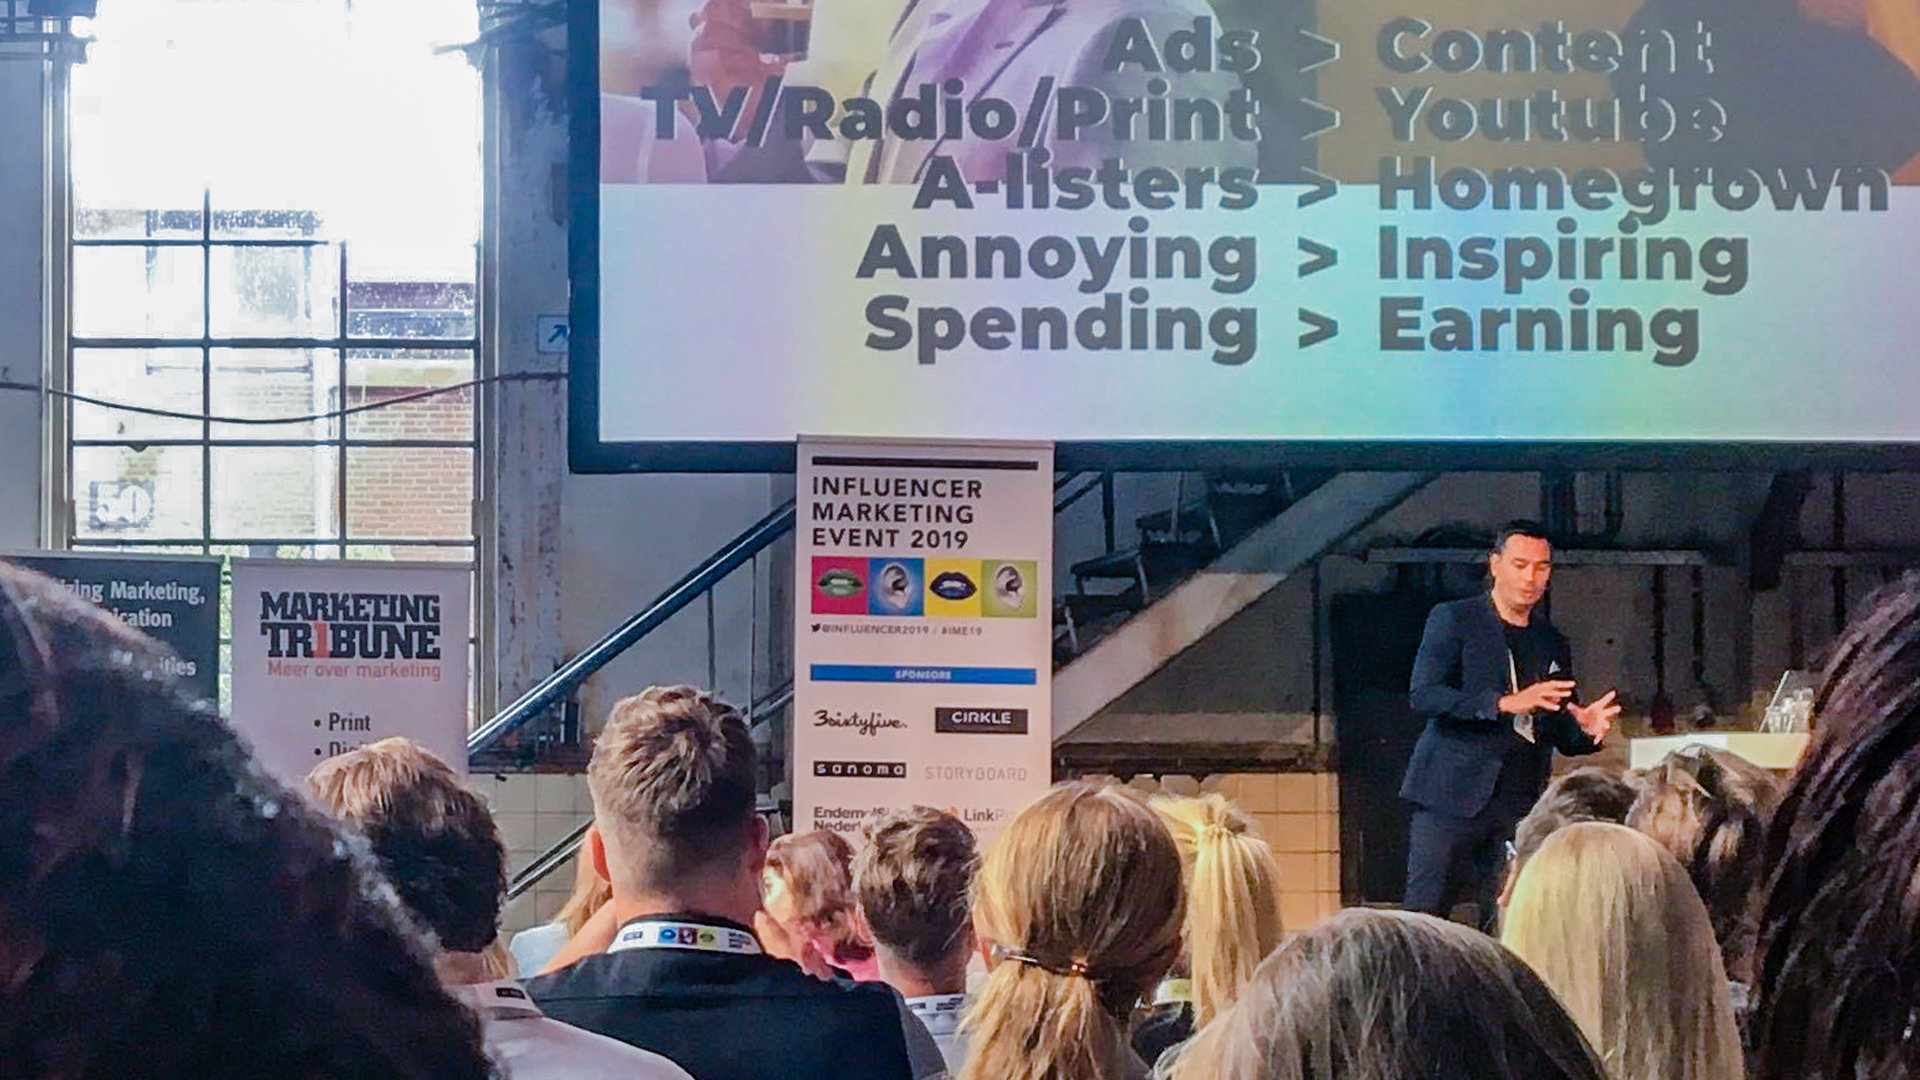 5 takeaways van het Influencer Marketing Event 2019